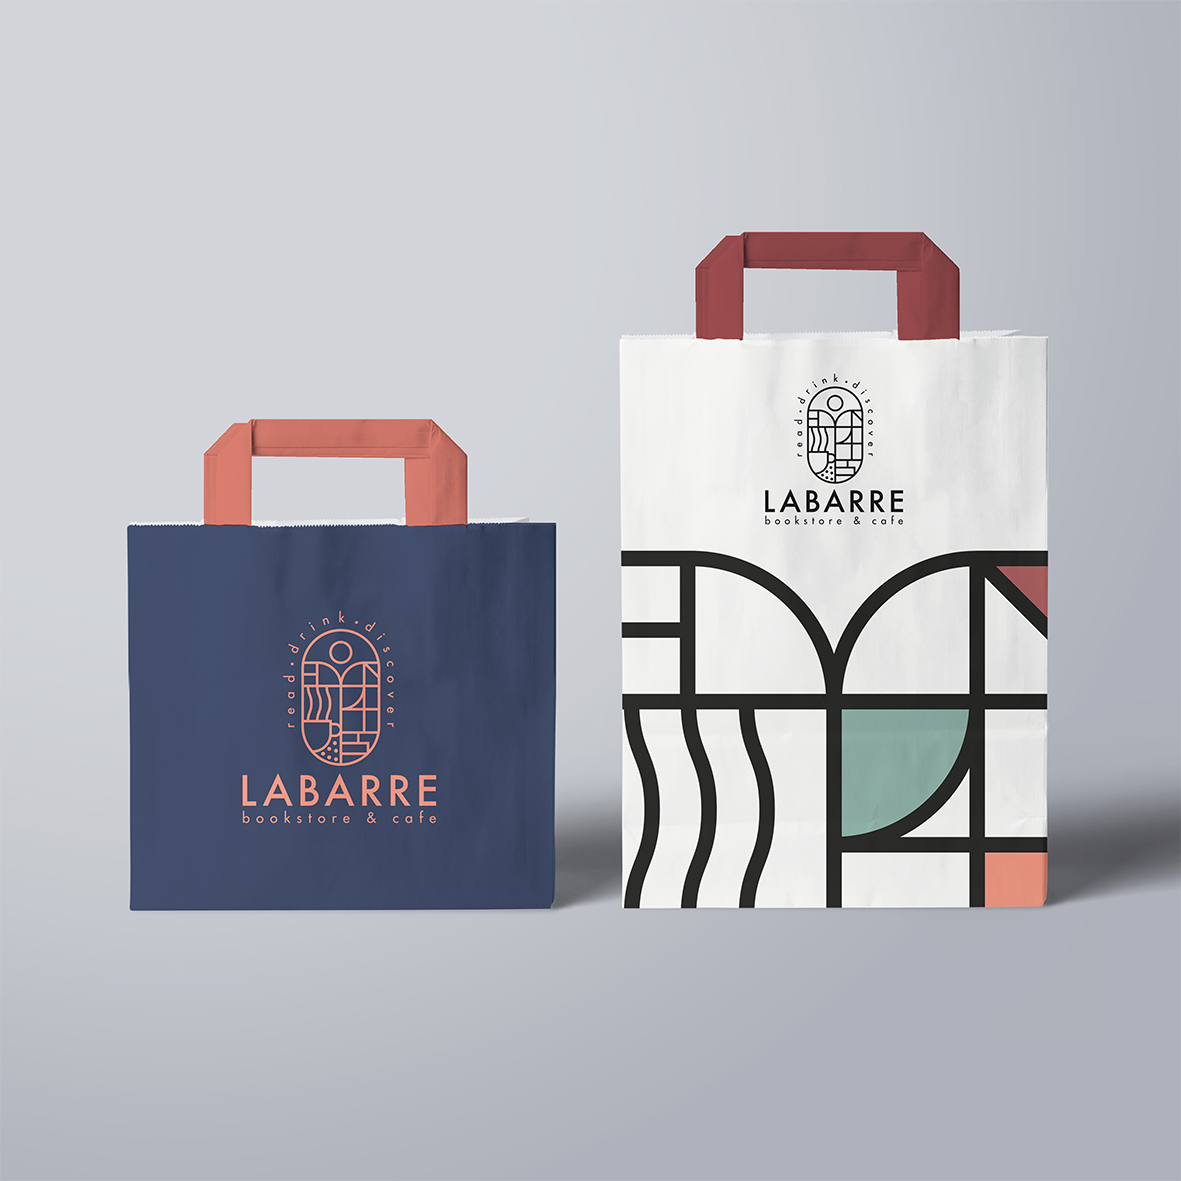 labarre_bookstore_cafe_identity_bag_paperbag